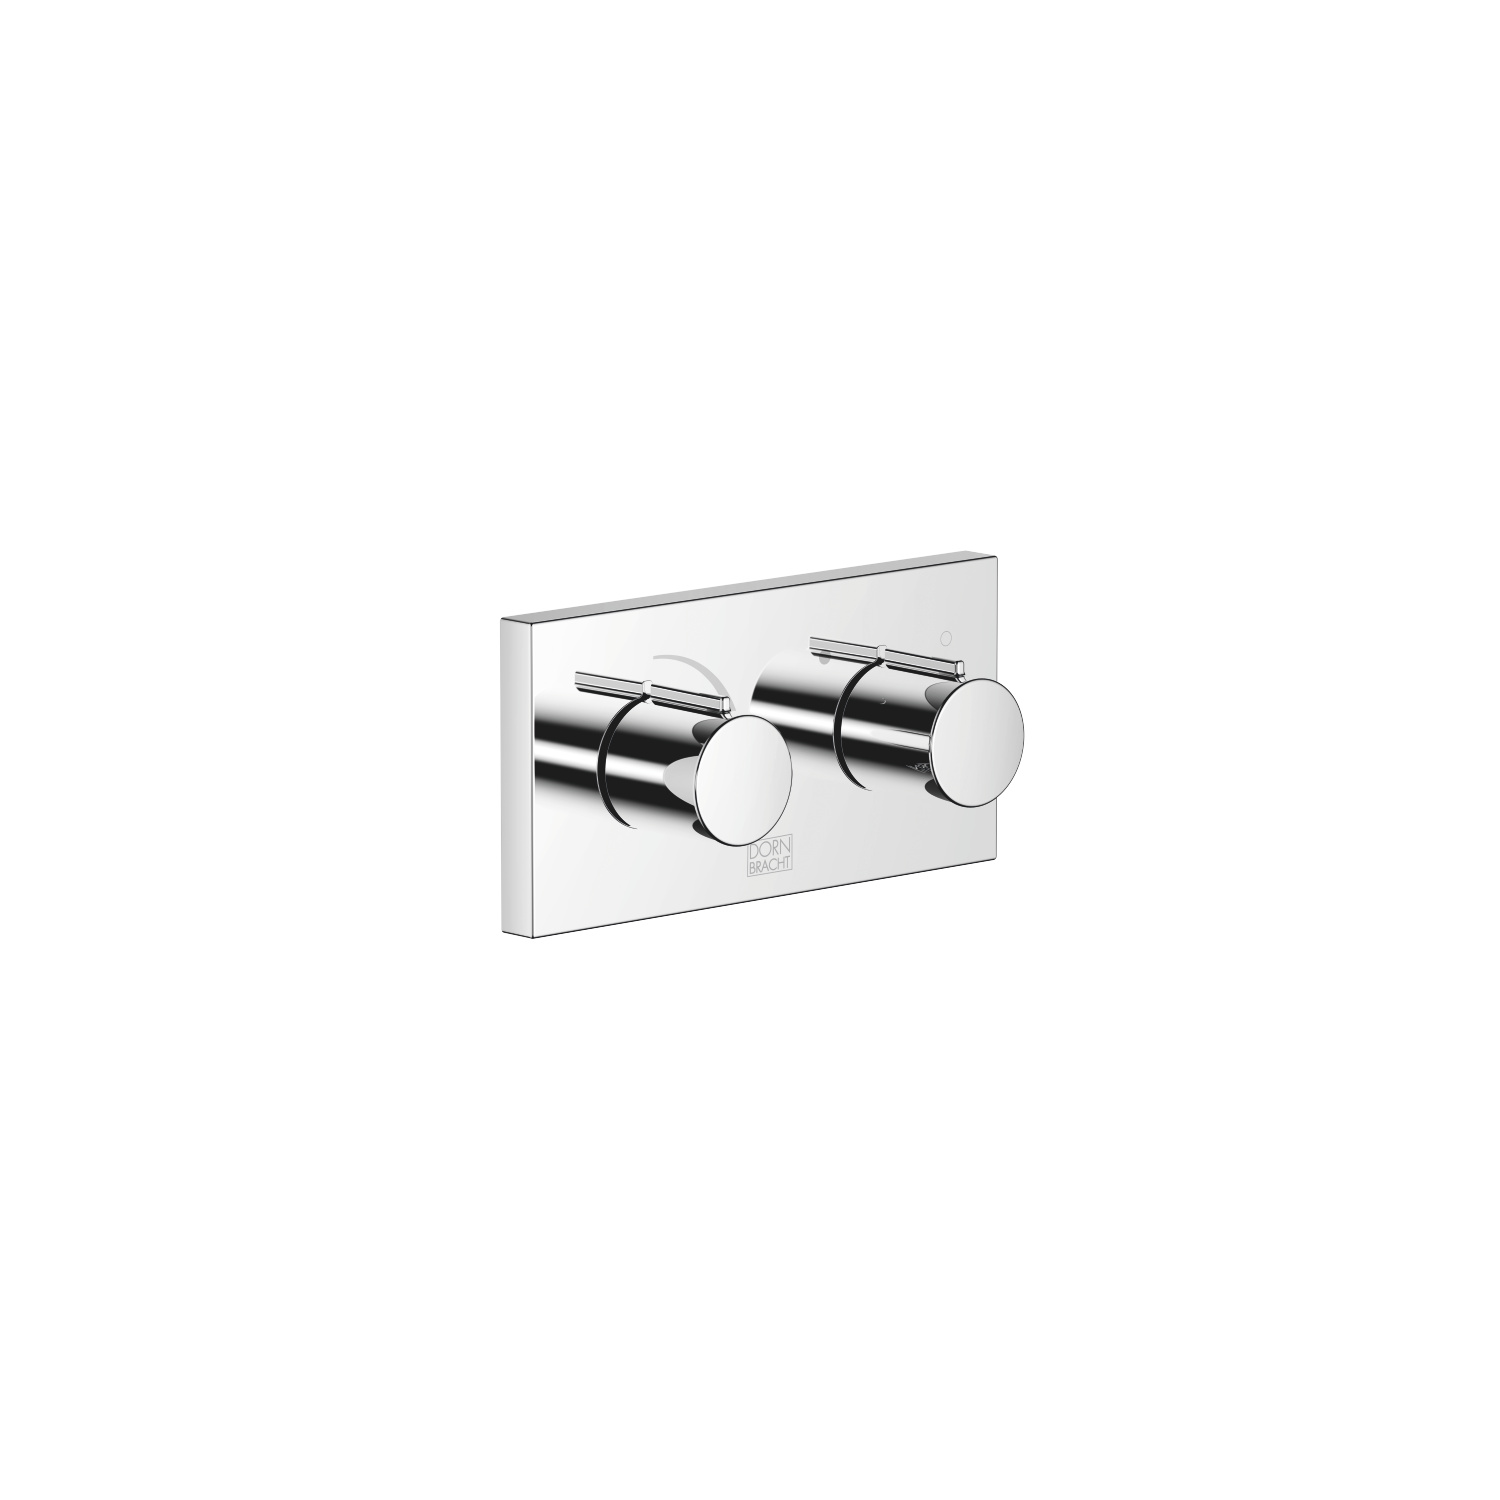 xGATE Mixing valve with volume control for wall-mounted installation - polished chrome